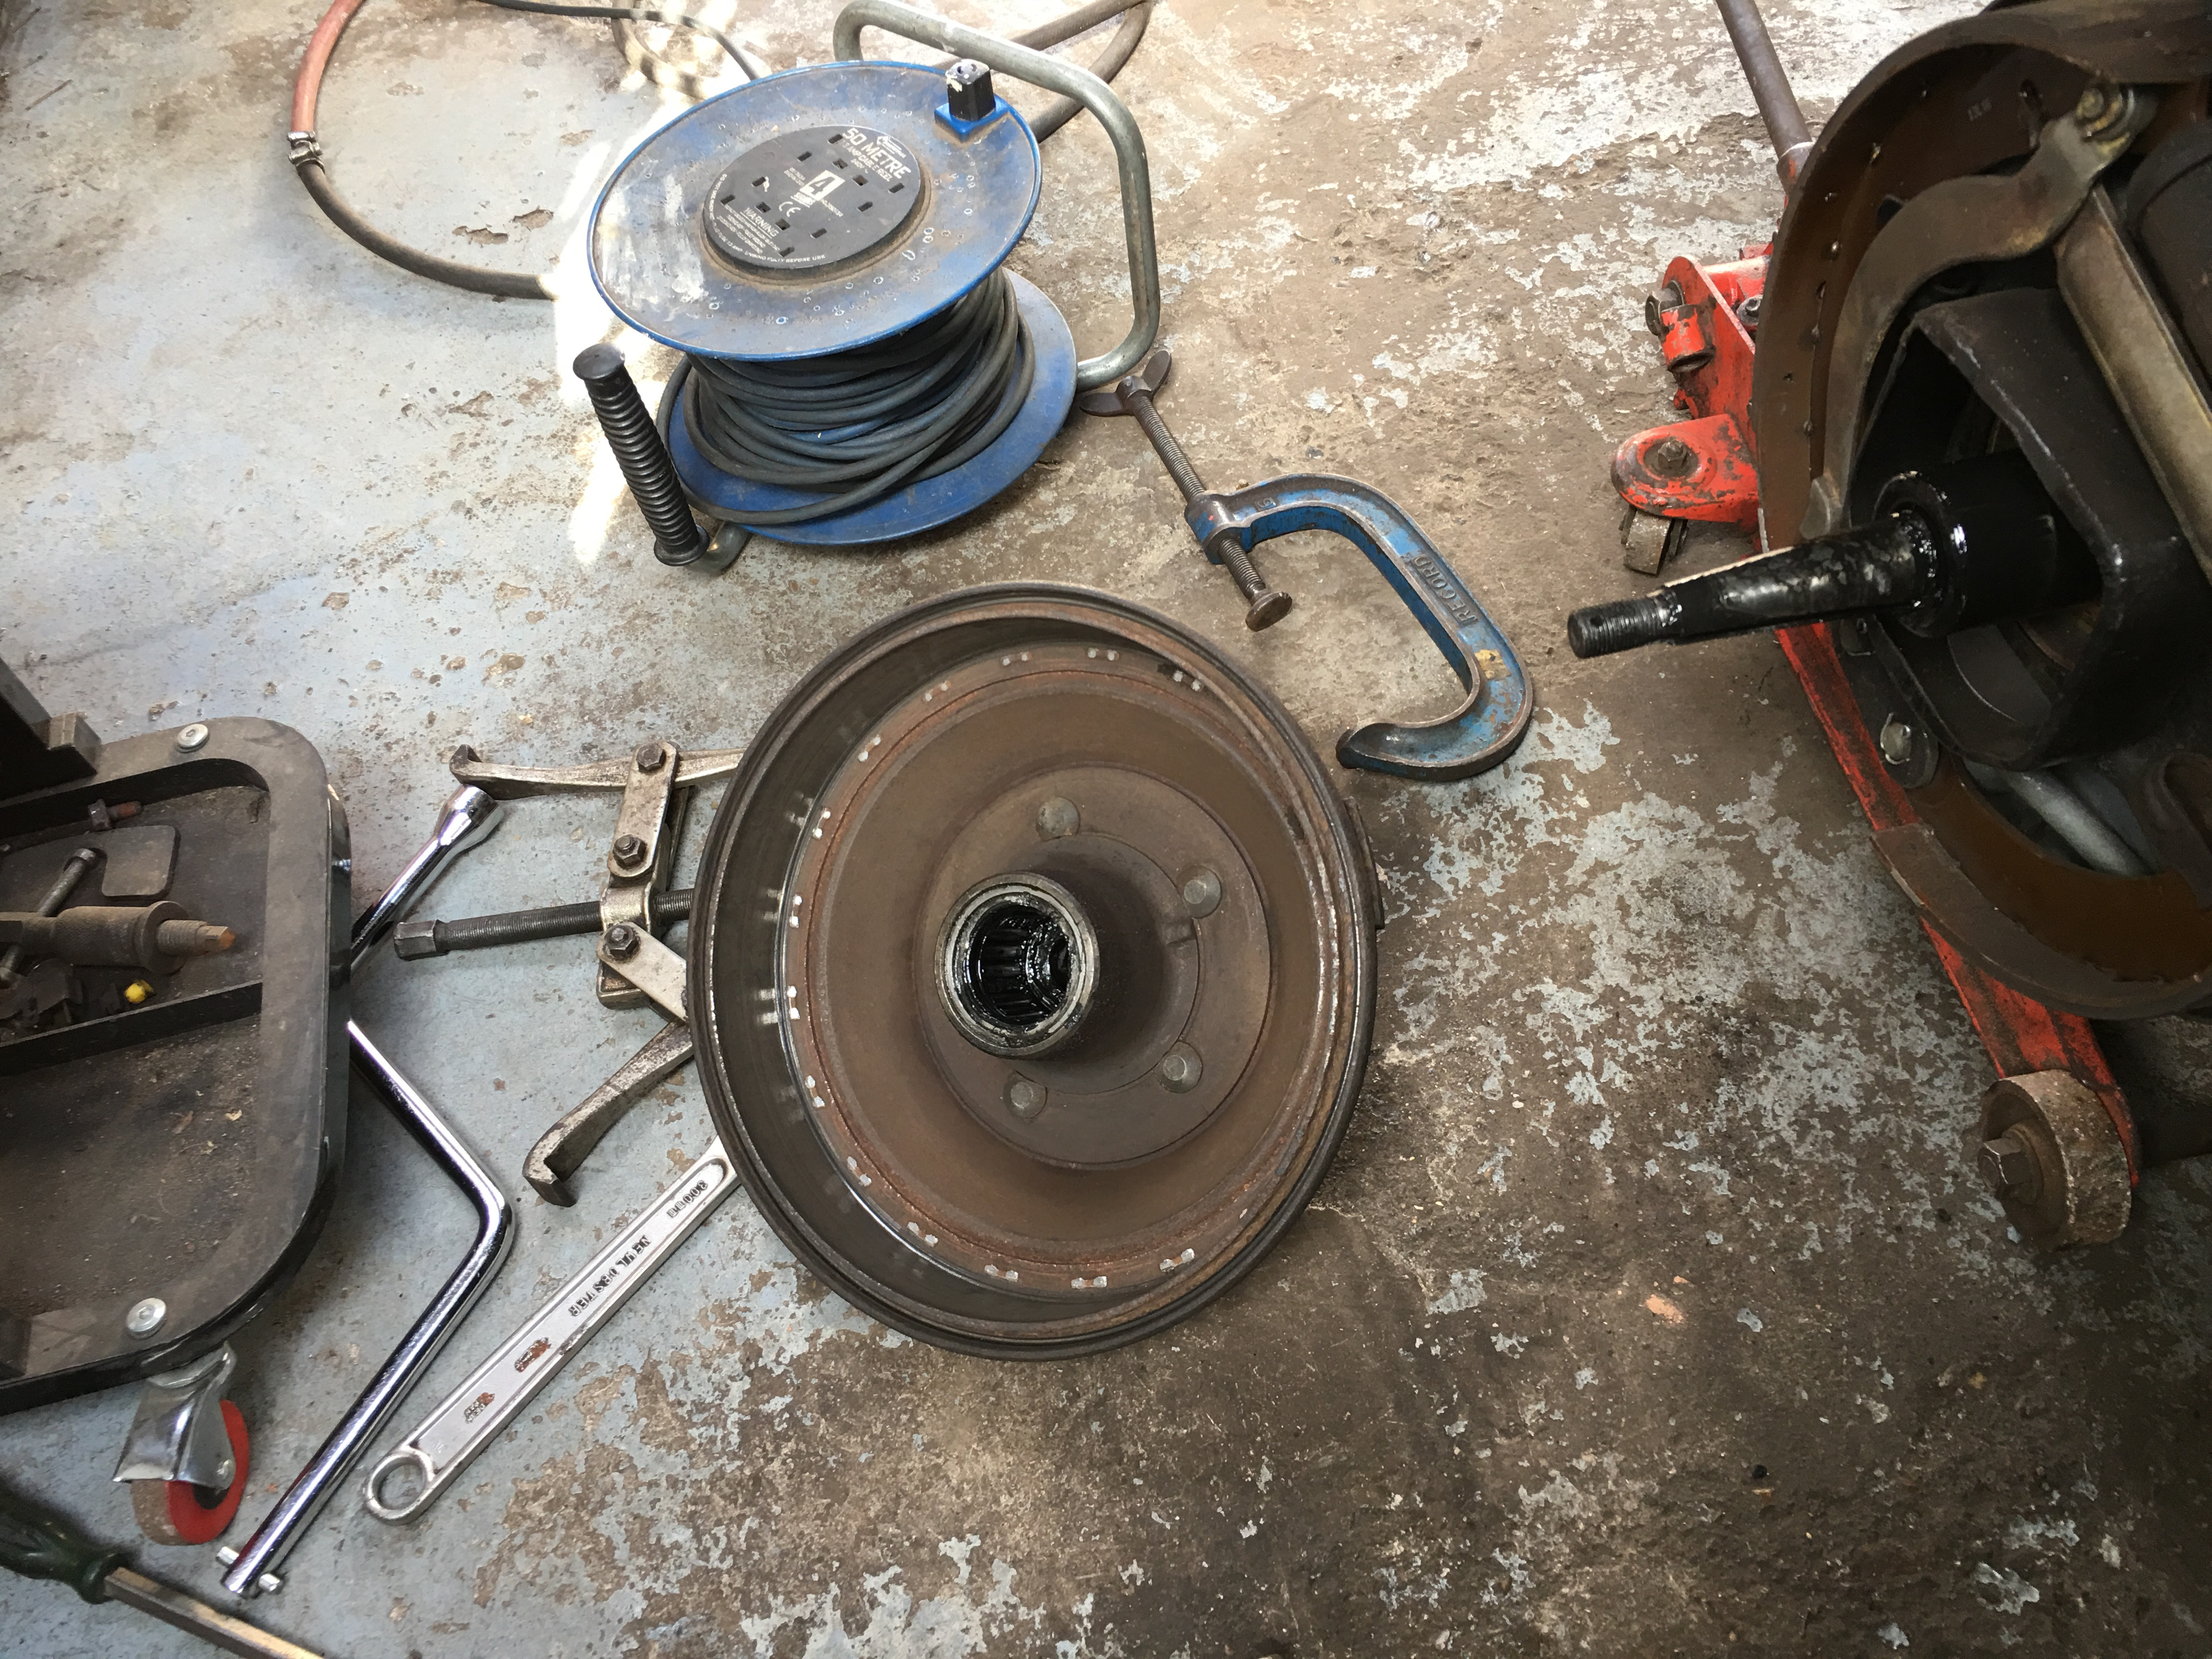 Brake Drum with evidence of contact